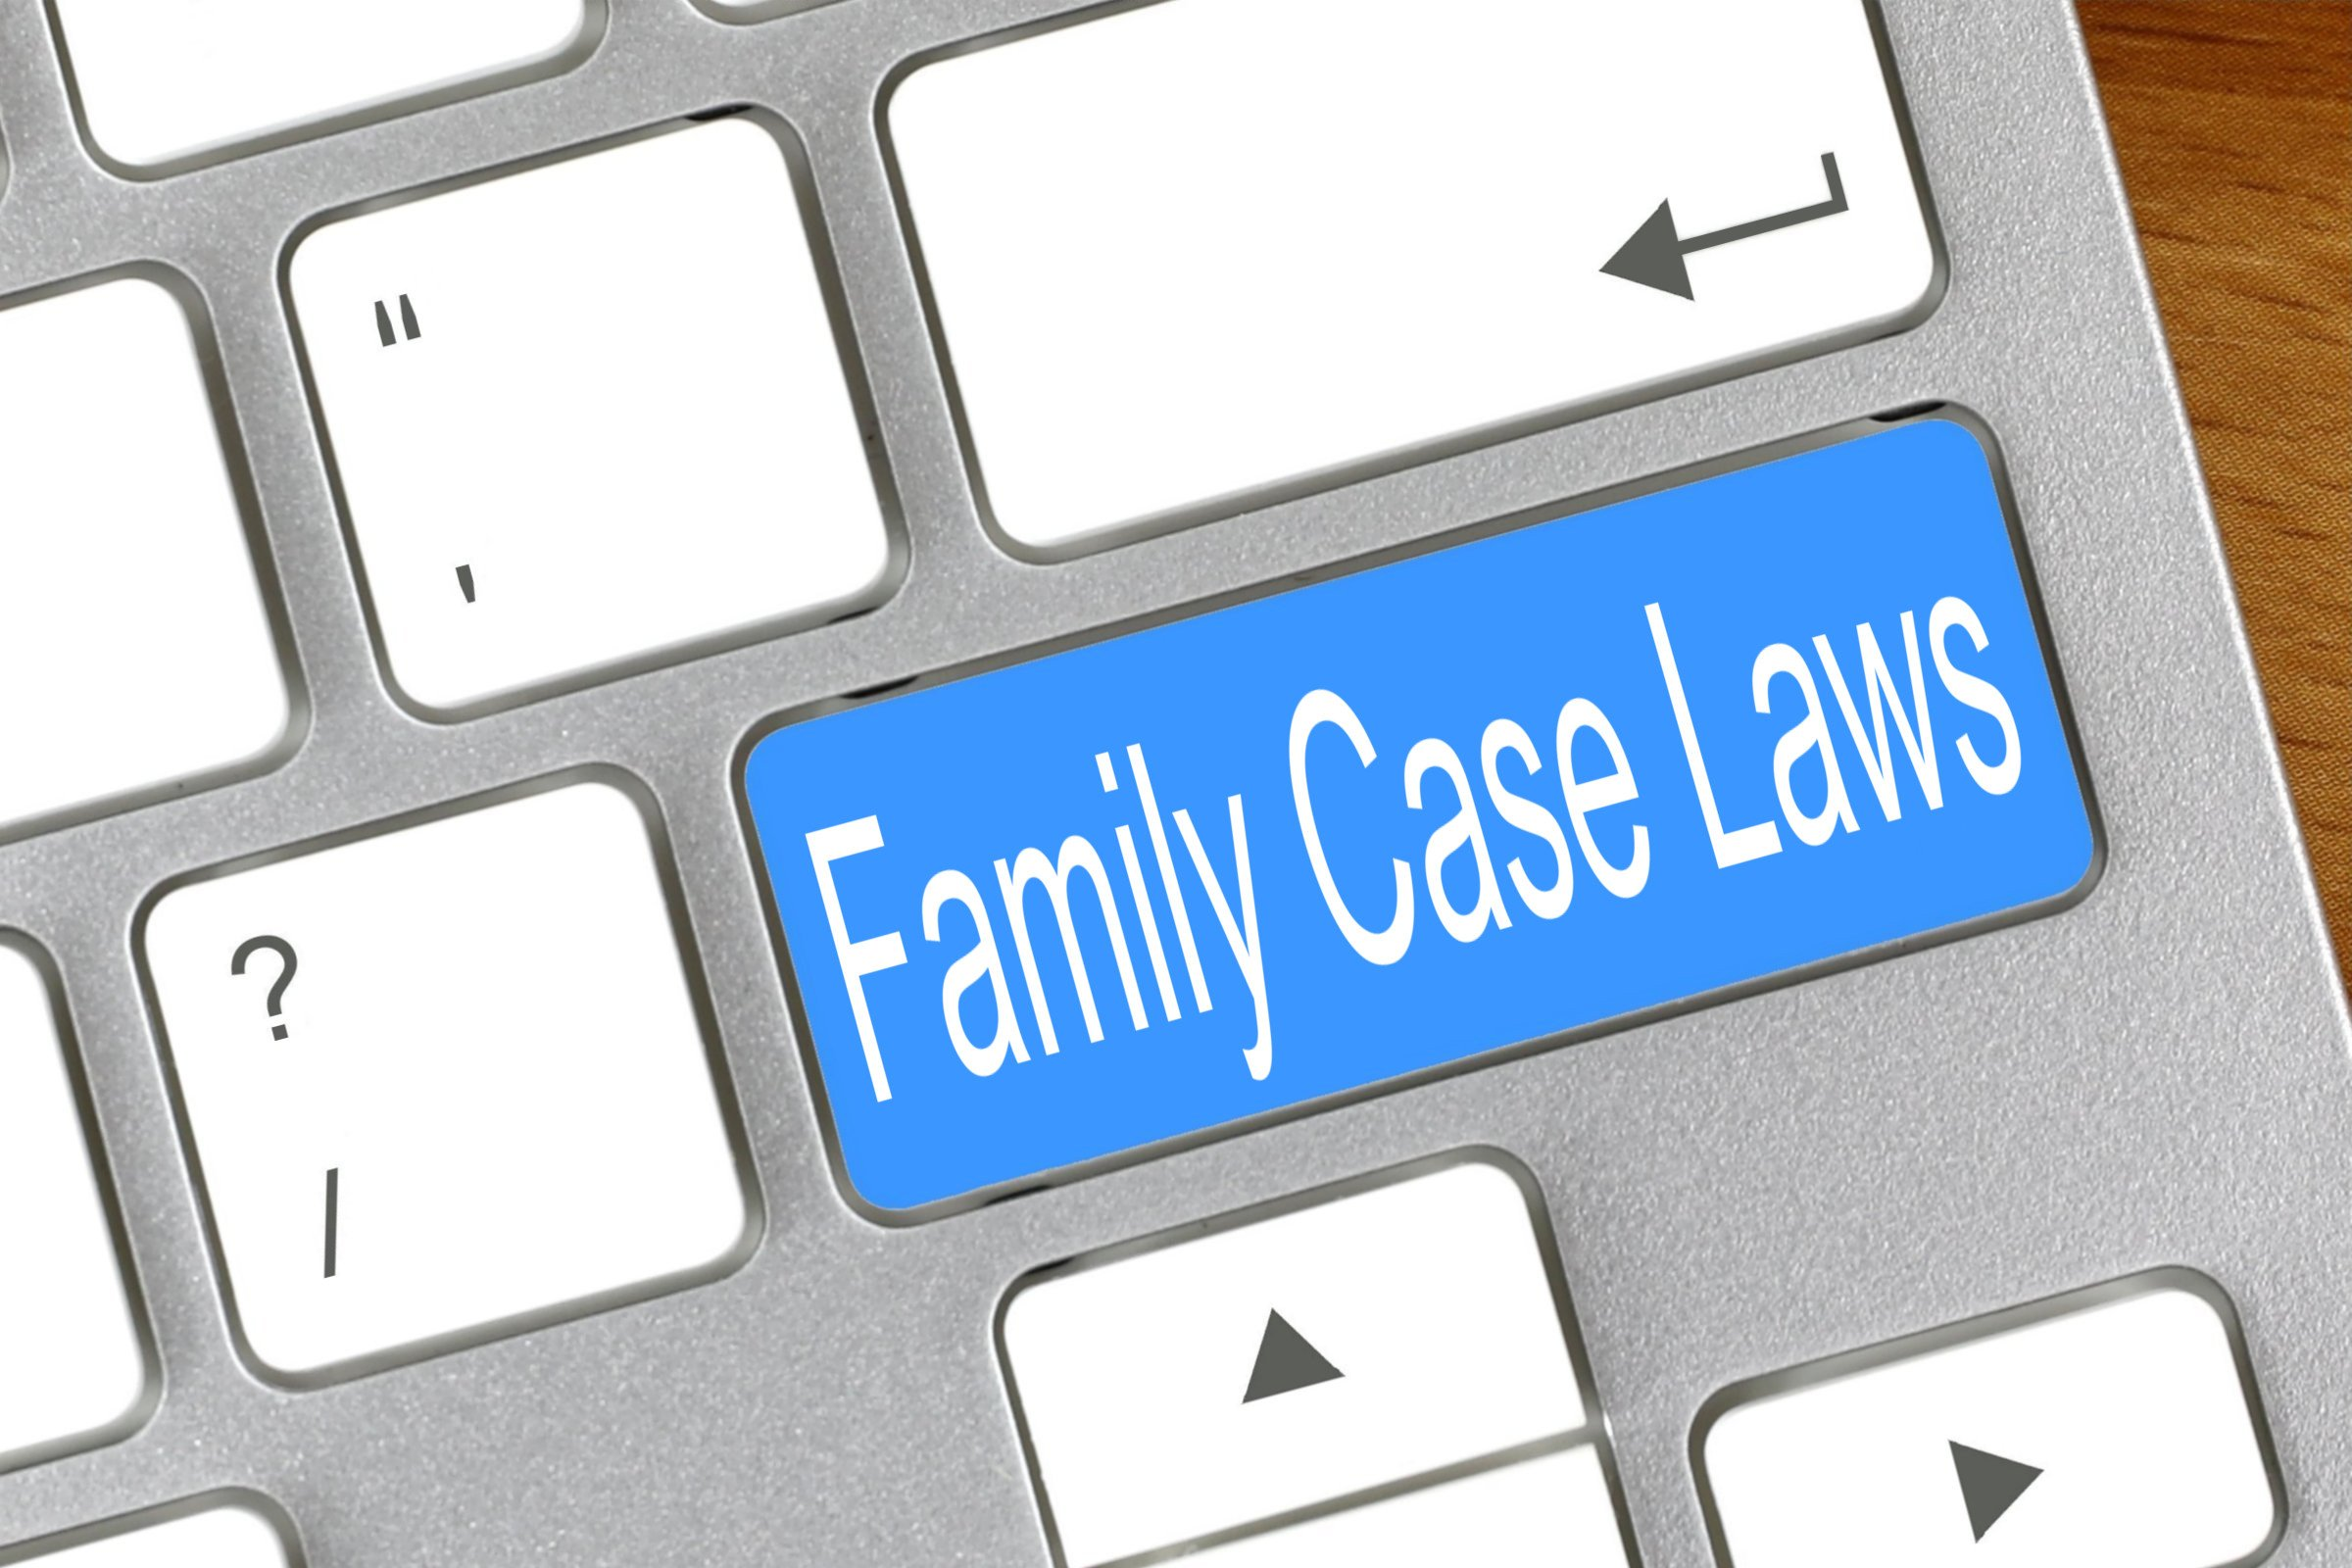 Family Case Laws